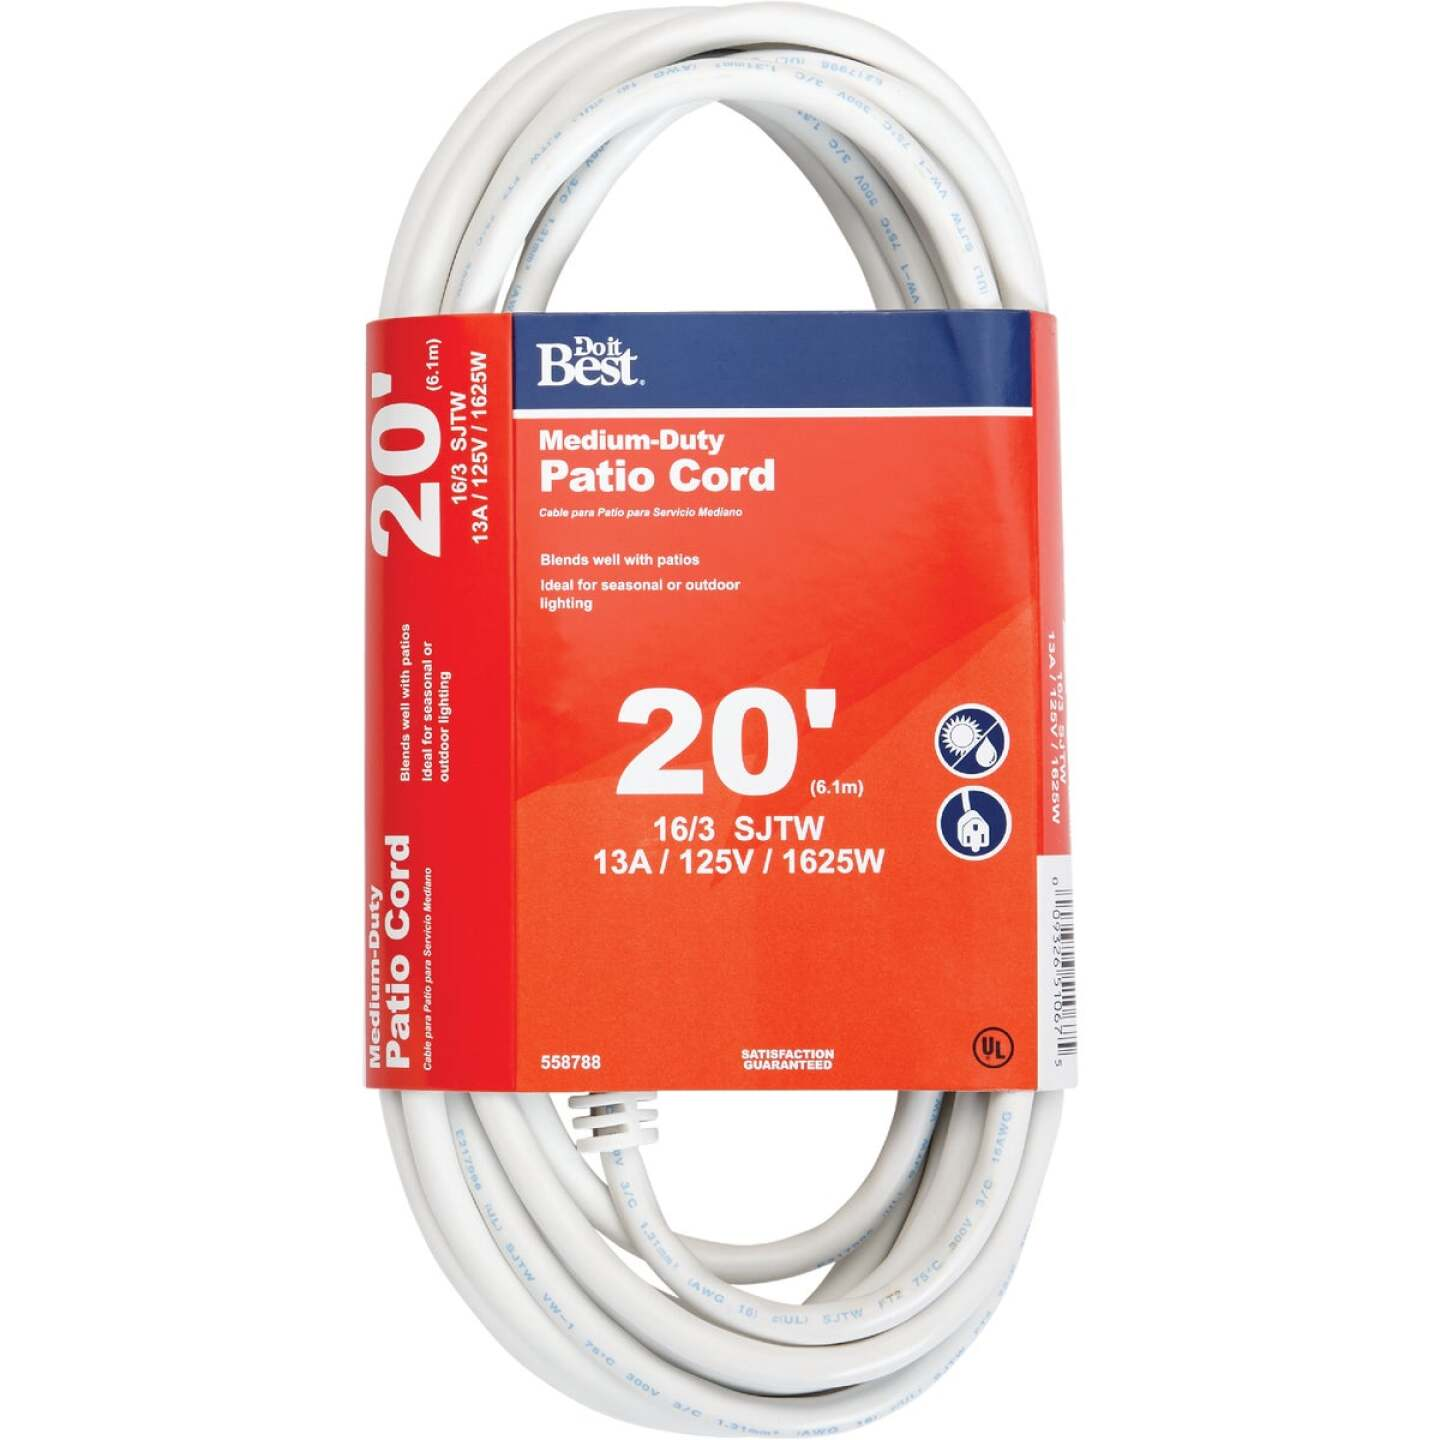 Do it Best 20 Ft. 16/3 Medium-Duty White Patio Extension Cord Image 1